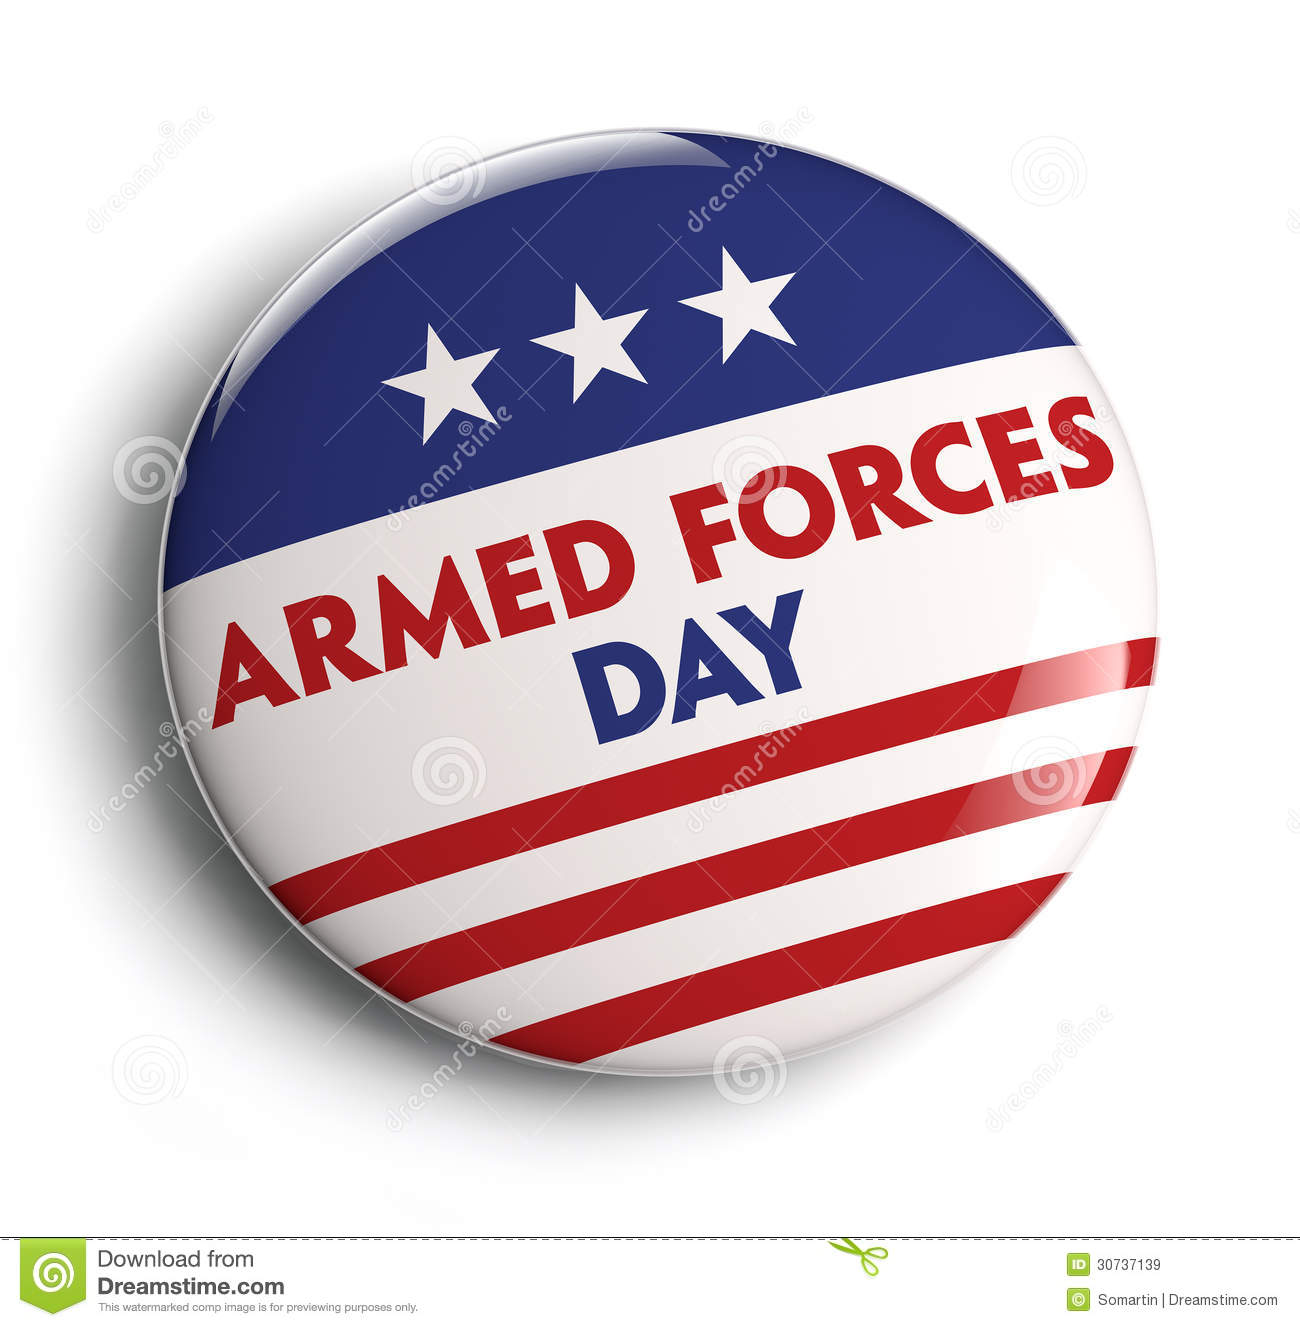 Armed Forces Day Backgrounds on Wallpapers Vista